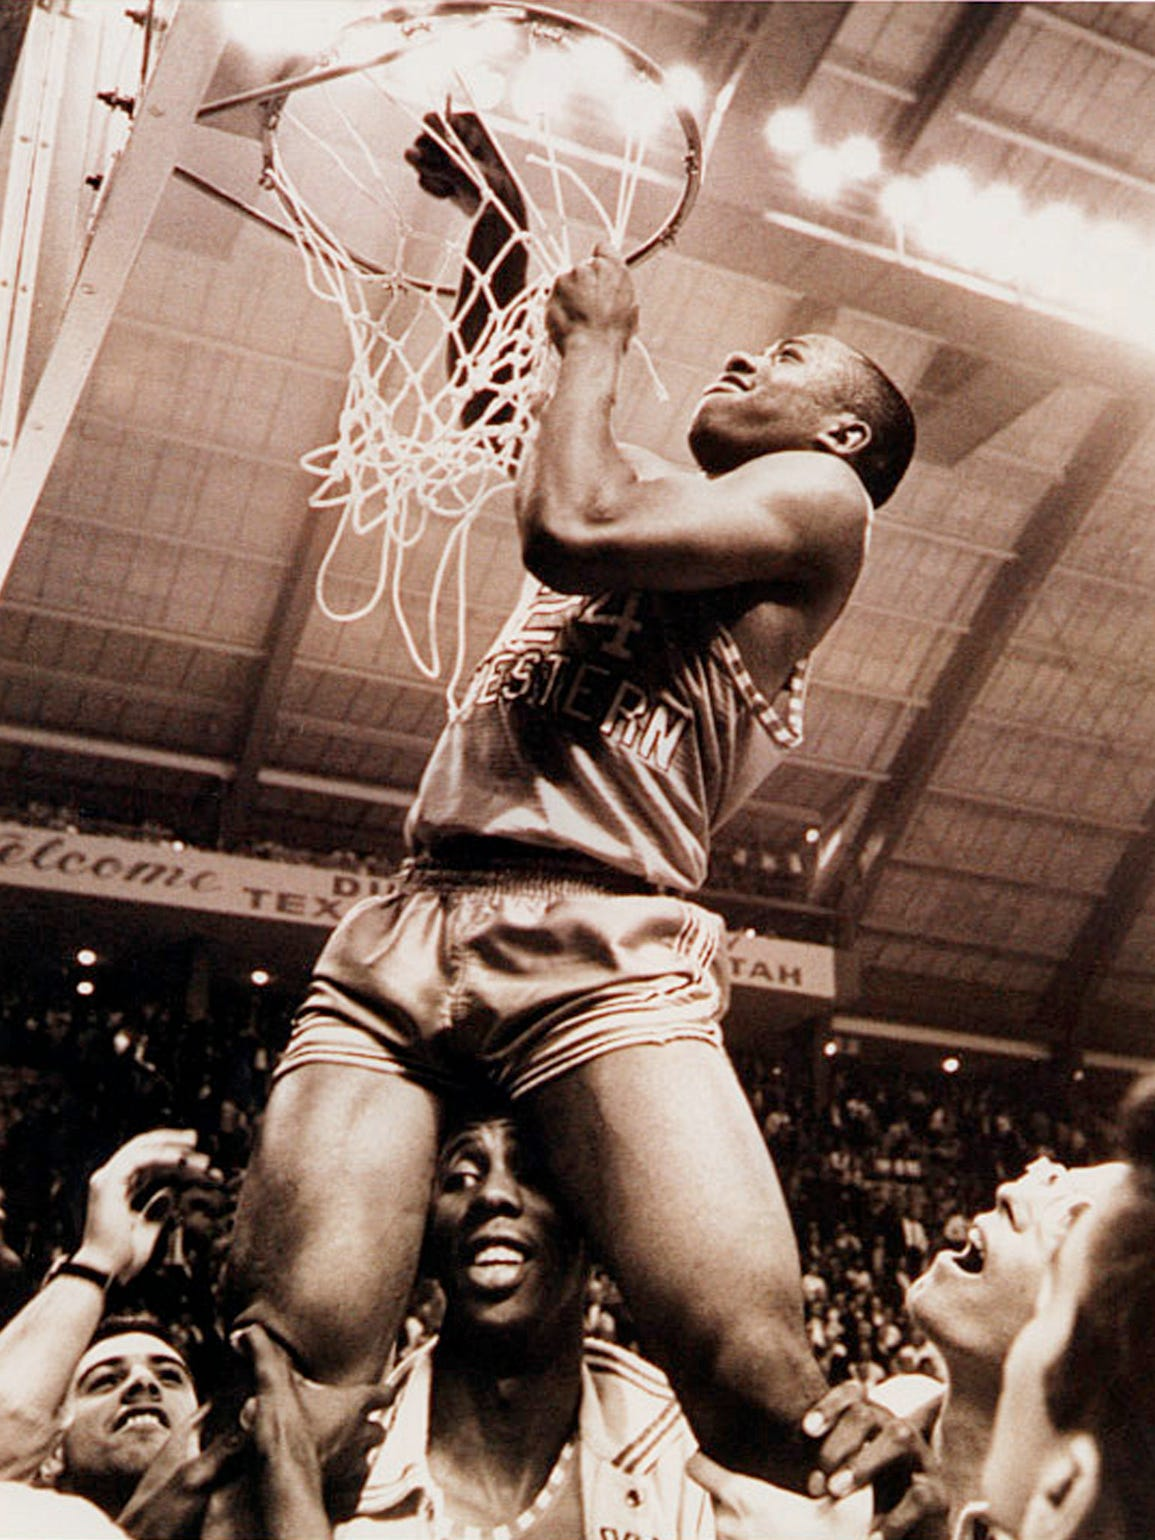 Wilie Worsley cuts down the net at the end of the game